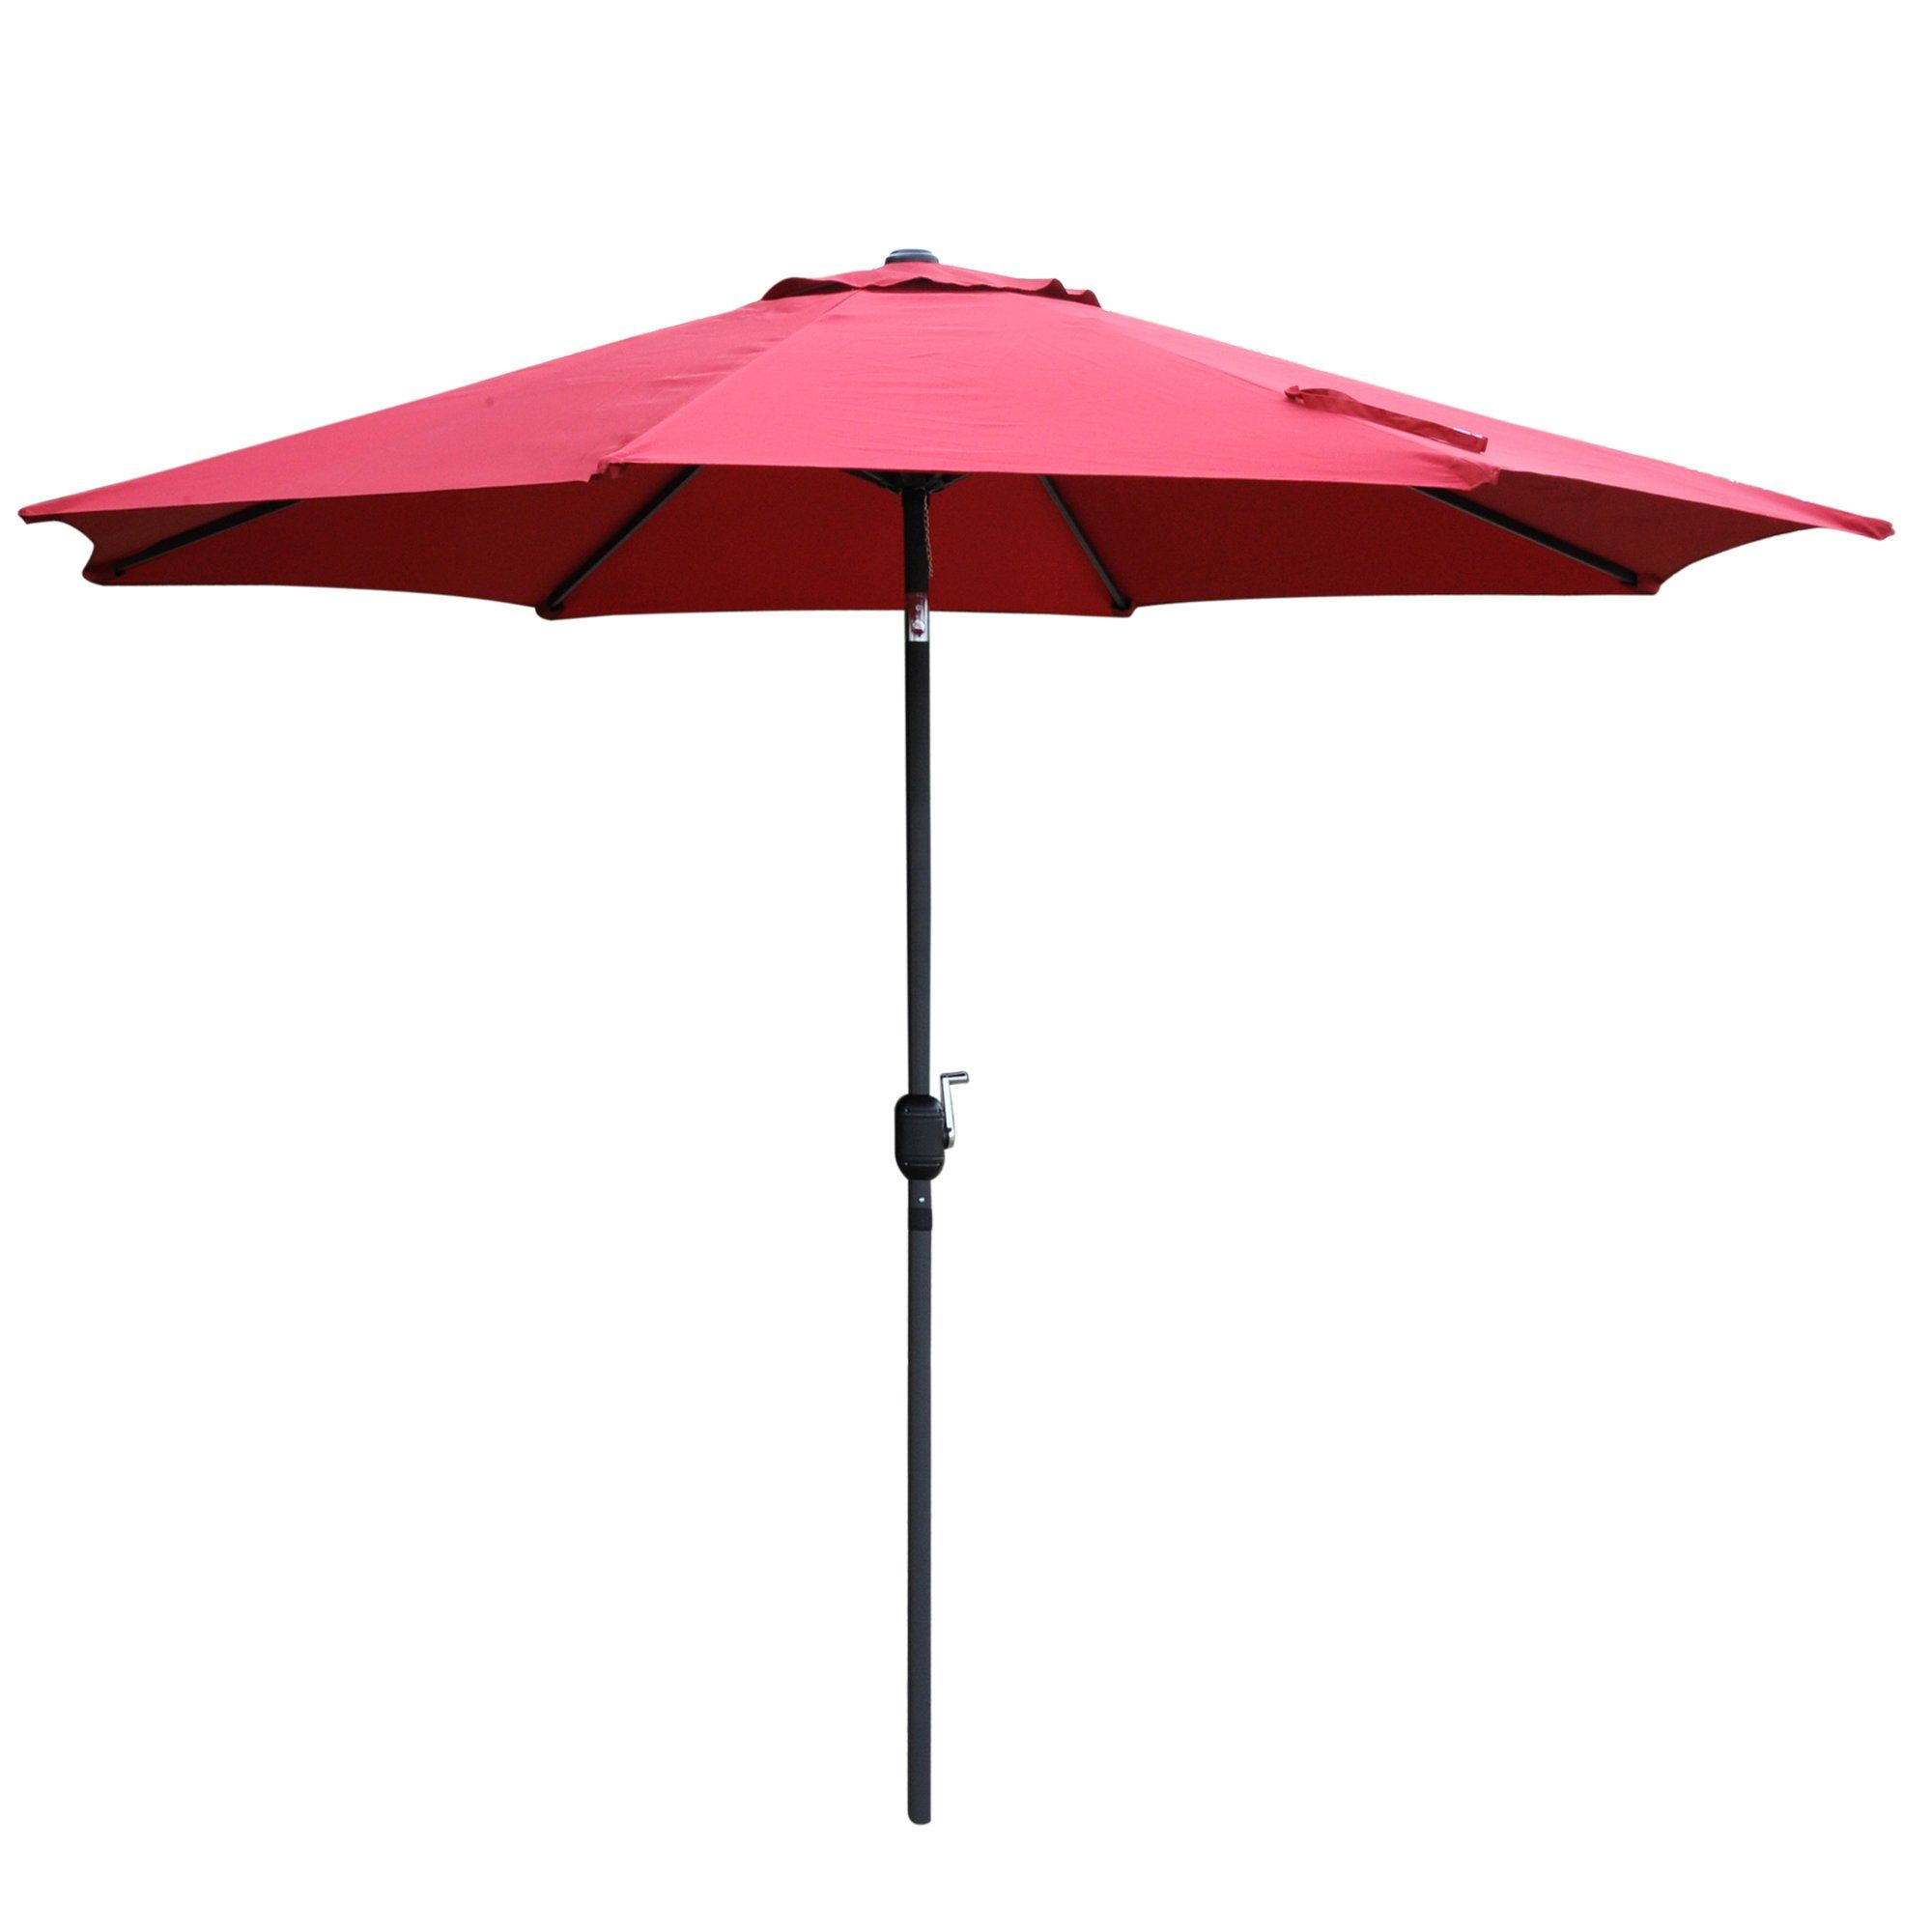 Pin On Patio Umbrella And Shades